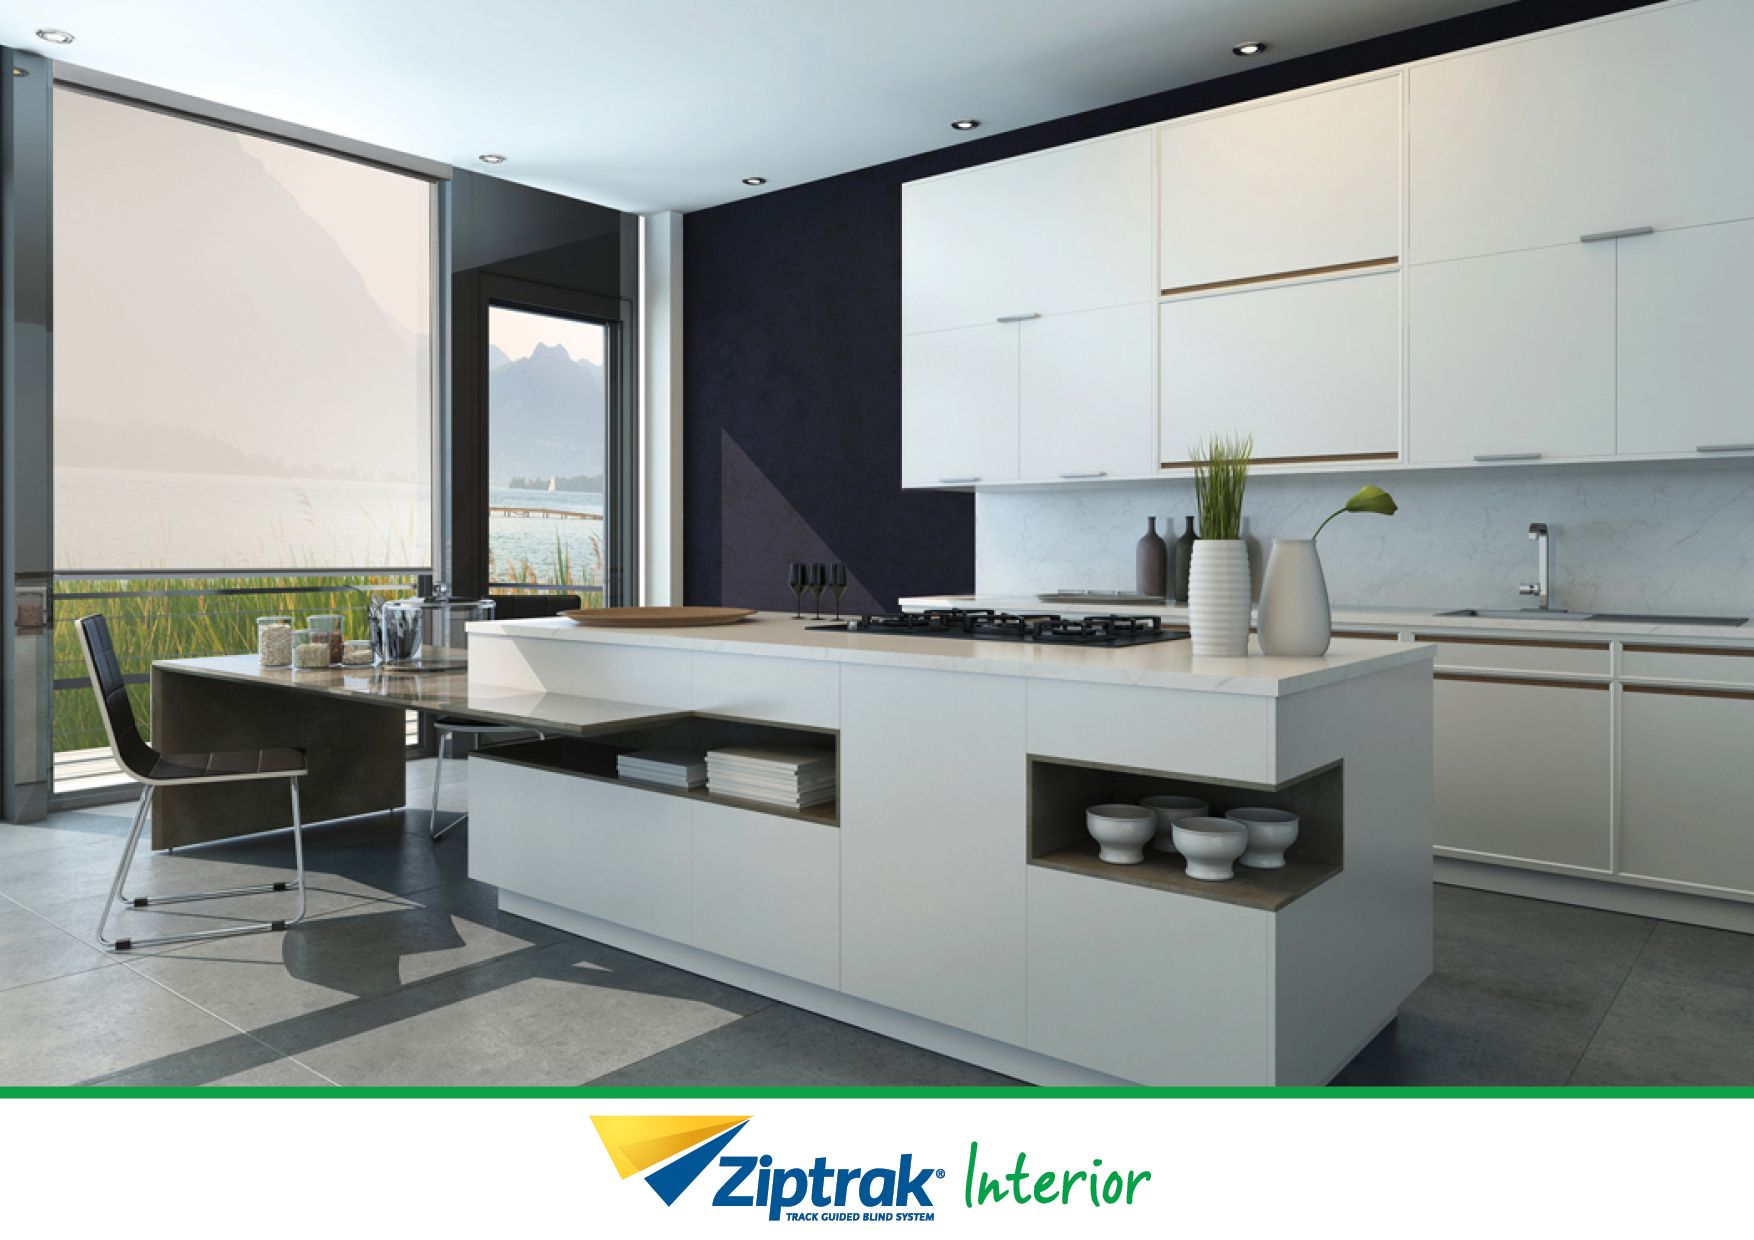 Ziptrak track guided interior blinds are a family friendly solution